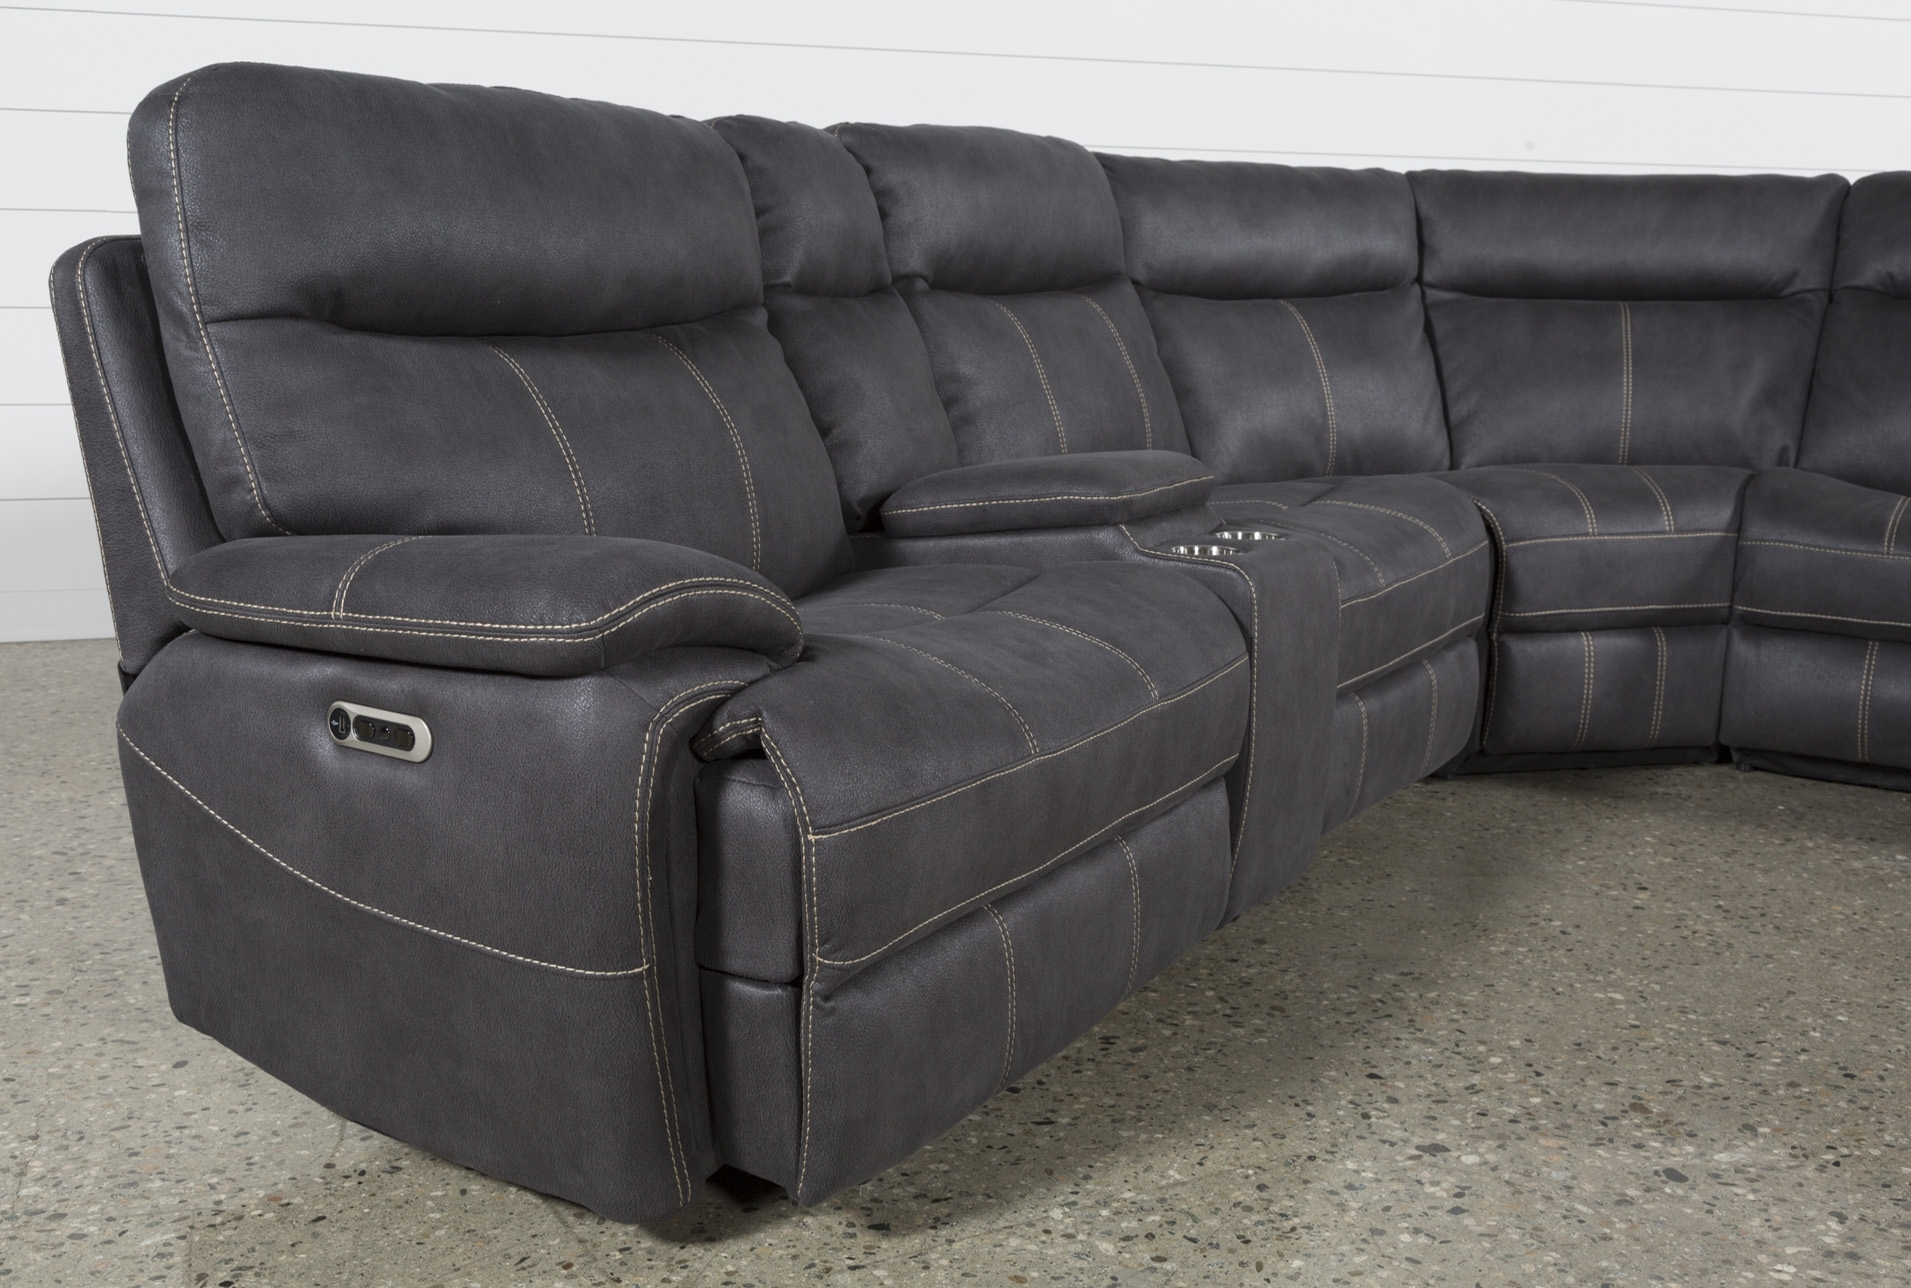 Denali Charcoal Grey 6 Piece Reclining Sectional W/2 Power Headrests Throughout Waylon 3 Piece Power Reclining Sectionals (Image 10 of 25)